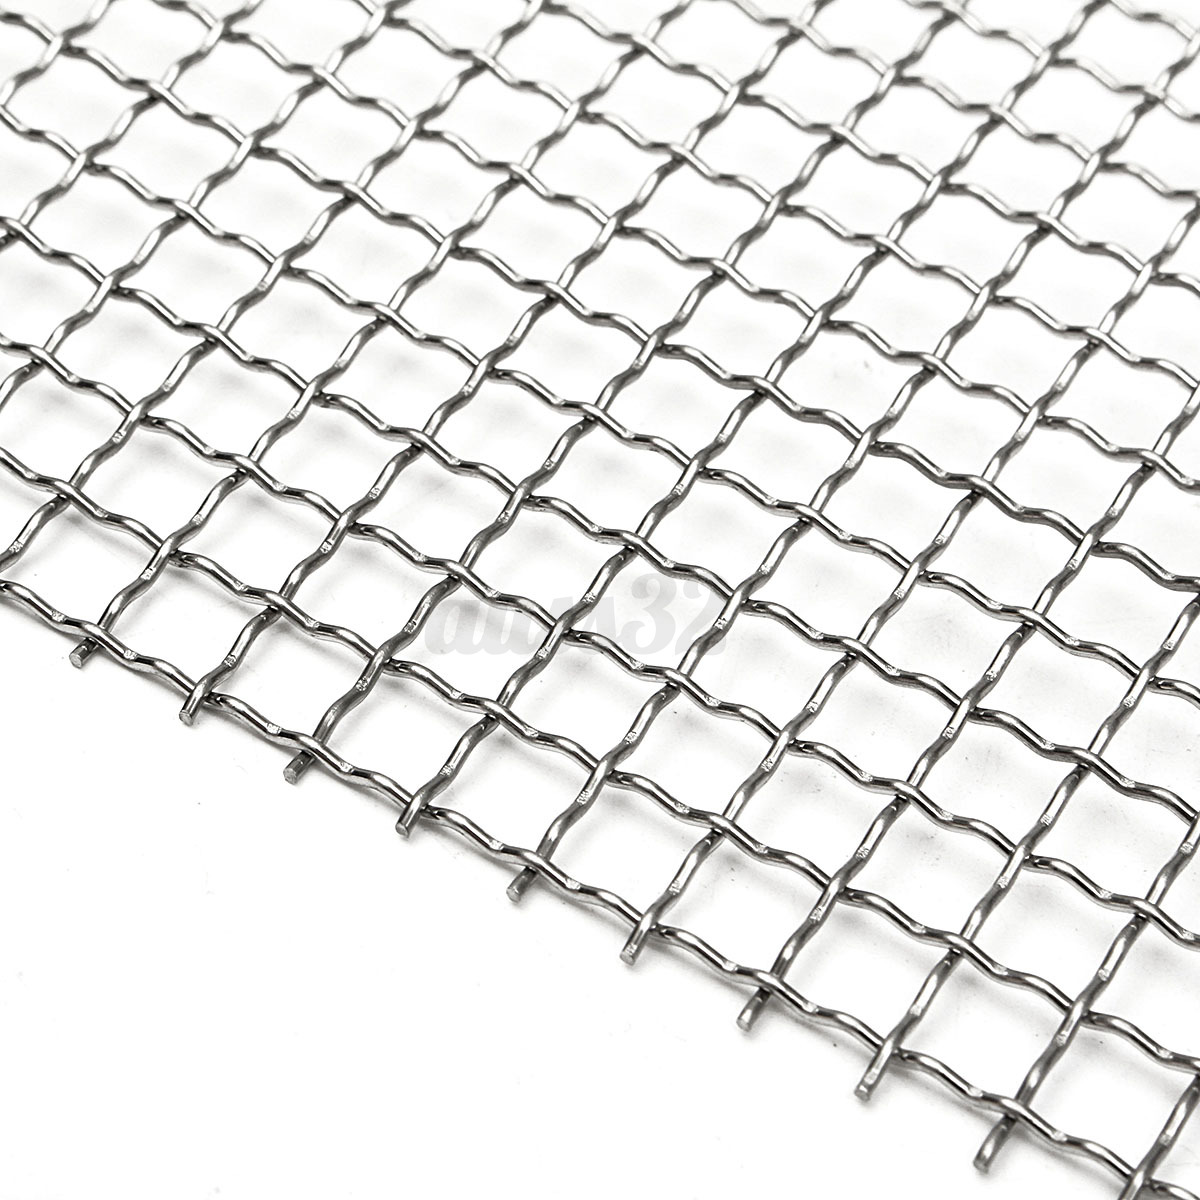 12 X 12 4 Micron Mesh 304 Stainless Steel Cloth Screen Filter Square Sheet